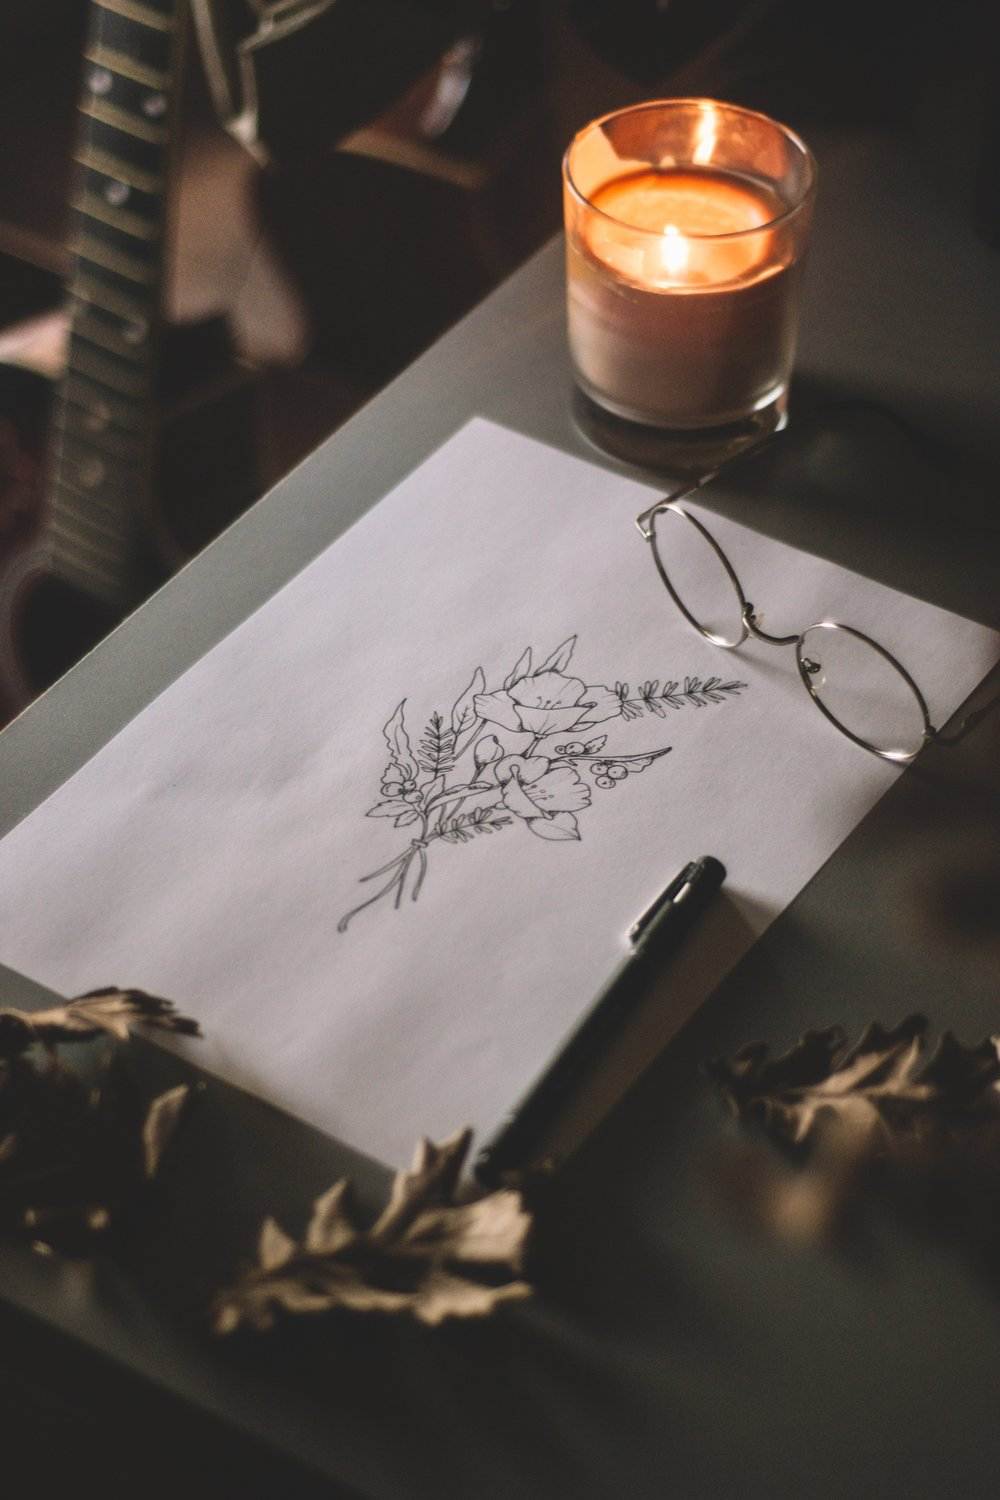 3 Creative Spells To Help Boost Your Art Magic Today // Witchcraft // The Traveling Witch